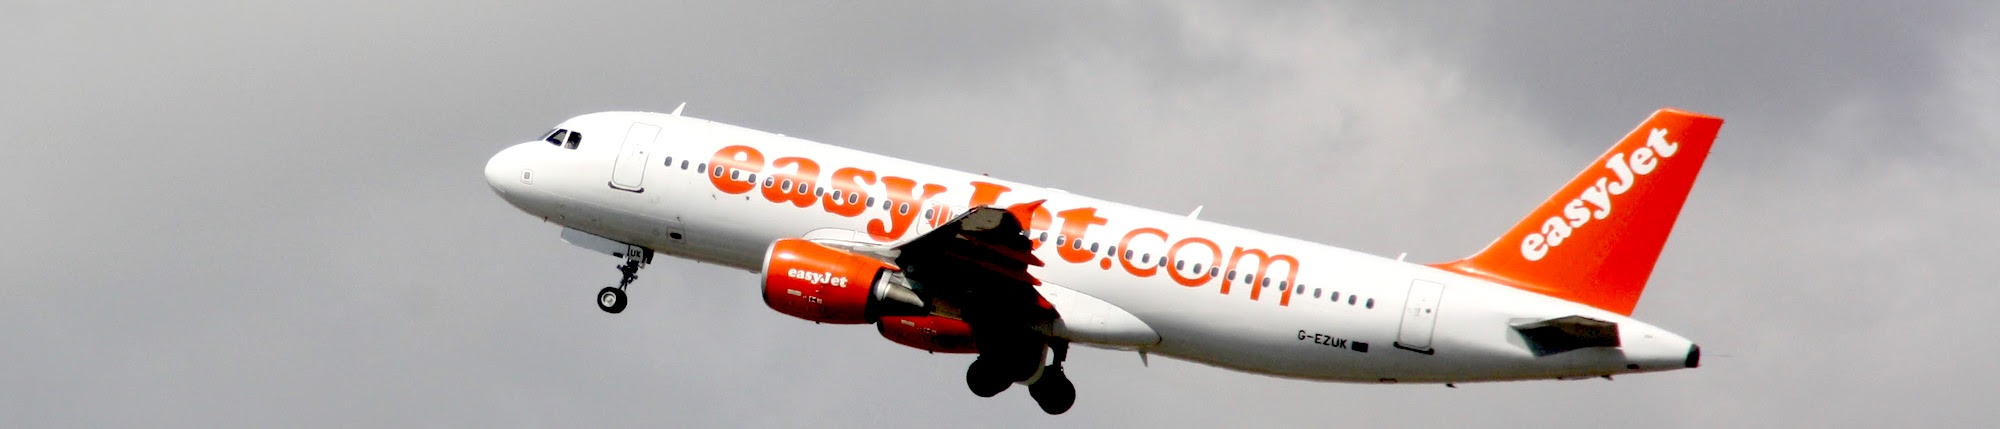 When to buy cheap EasyJet tickets. AirHint predicts price changes and suggests the best fare.